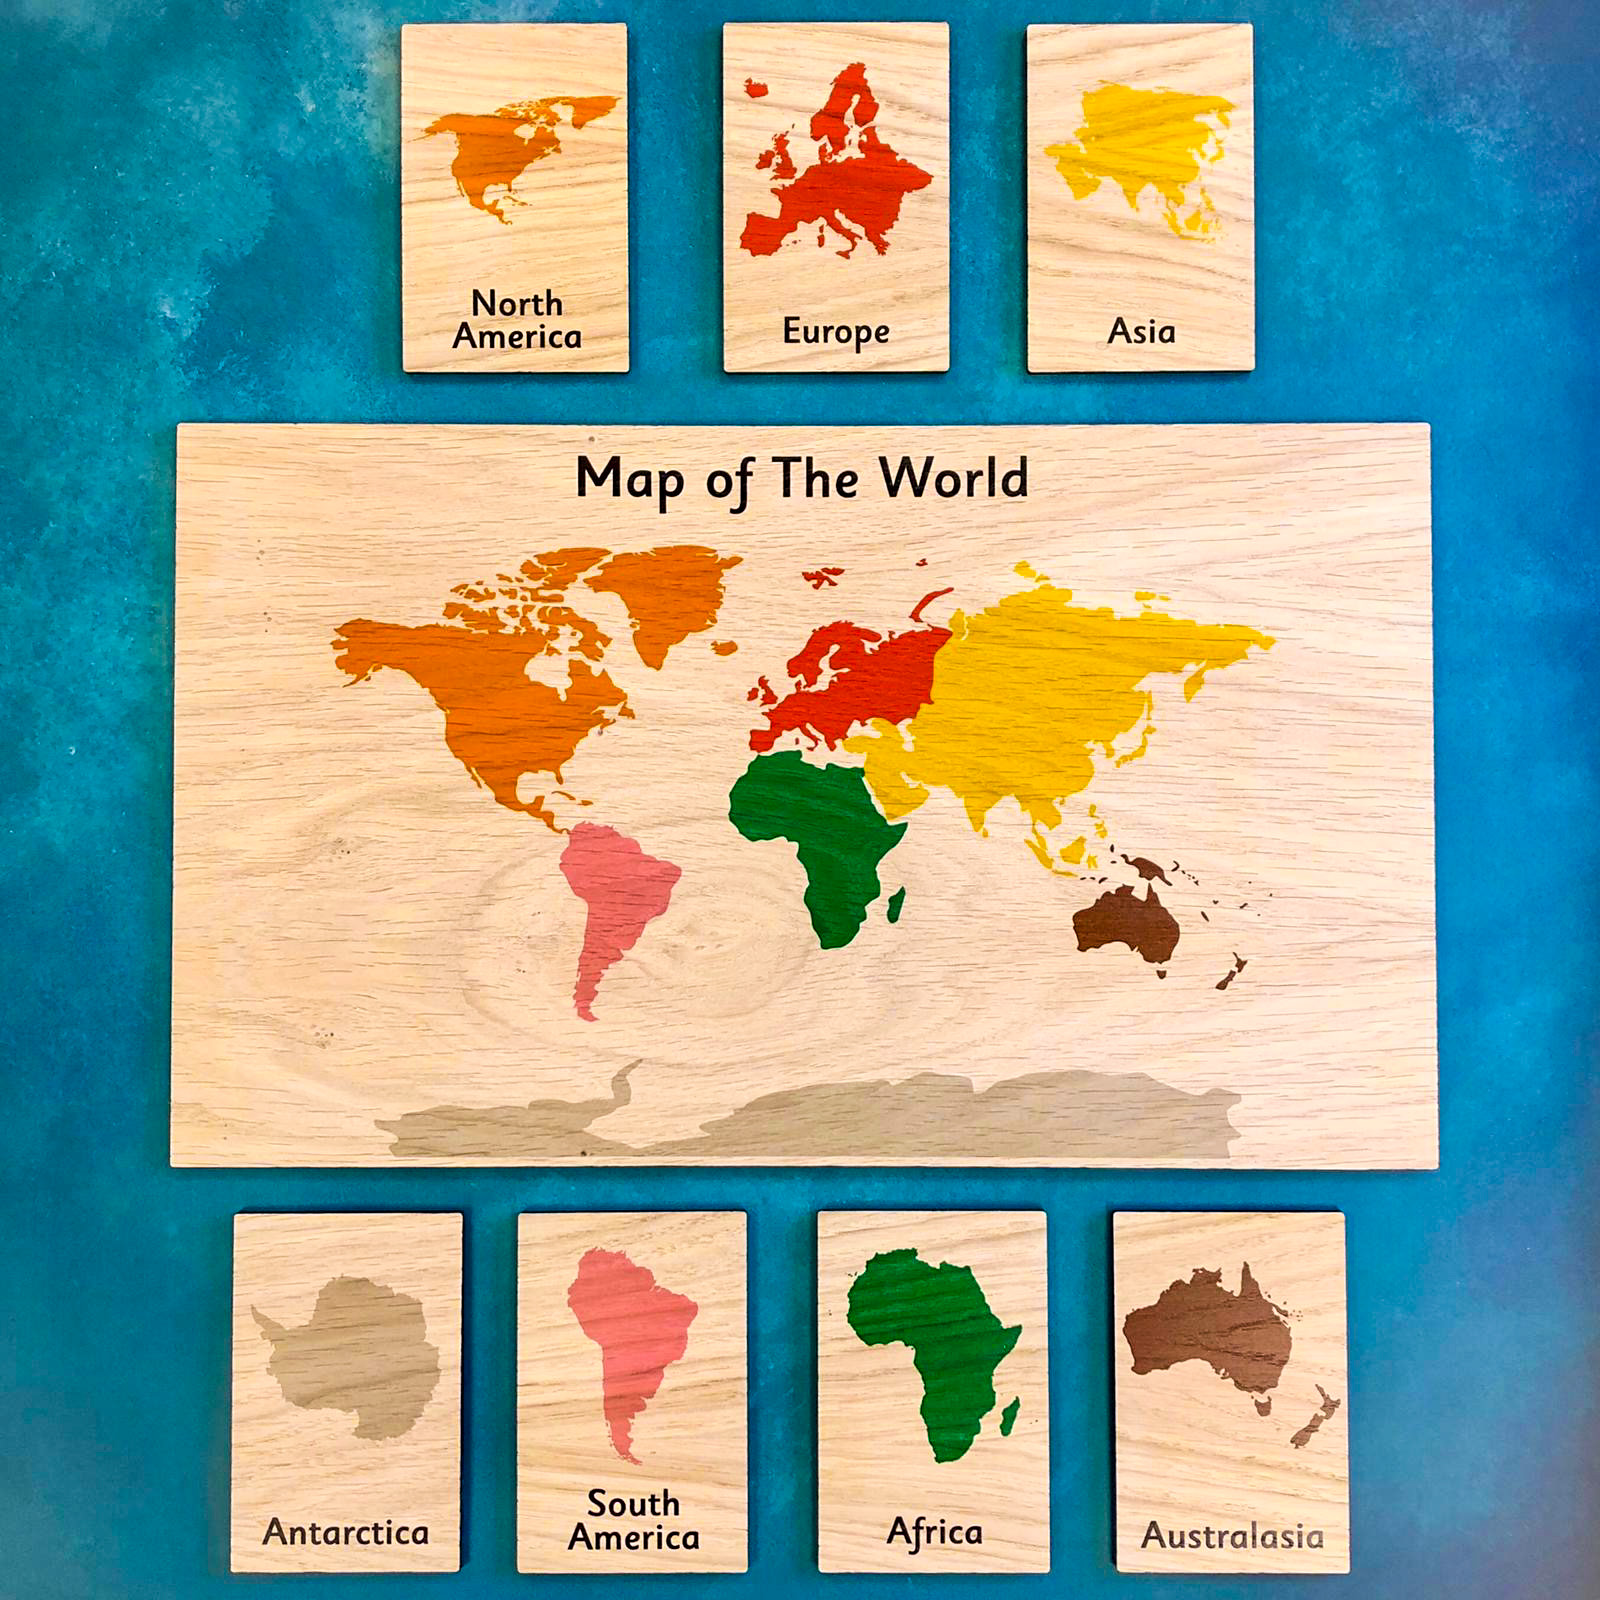 Montessori Inspired Wooden Display Board & Learning Tiles Set - Map of the World and Continent Tiles